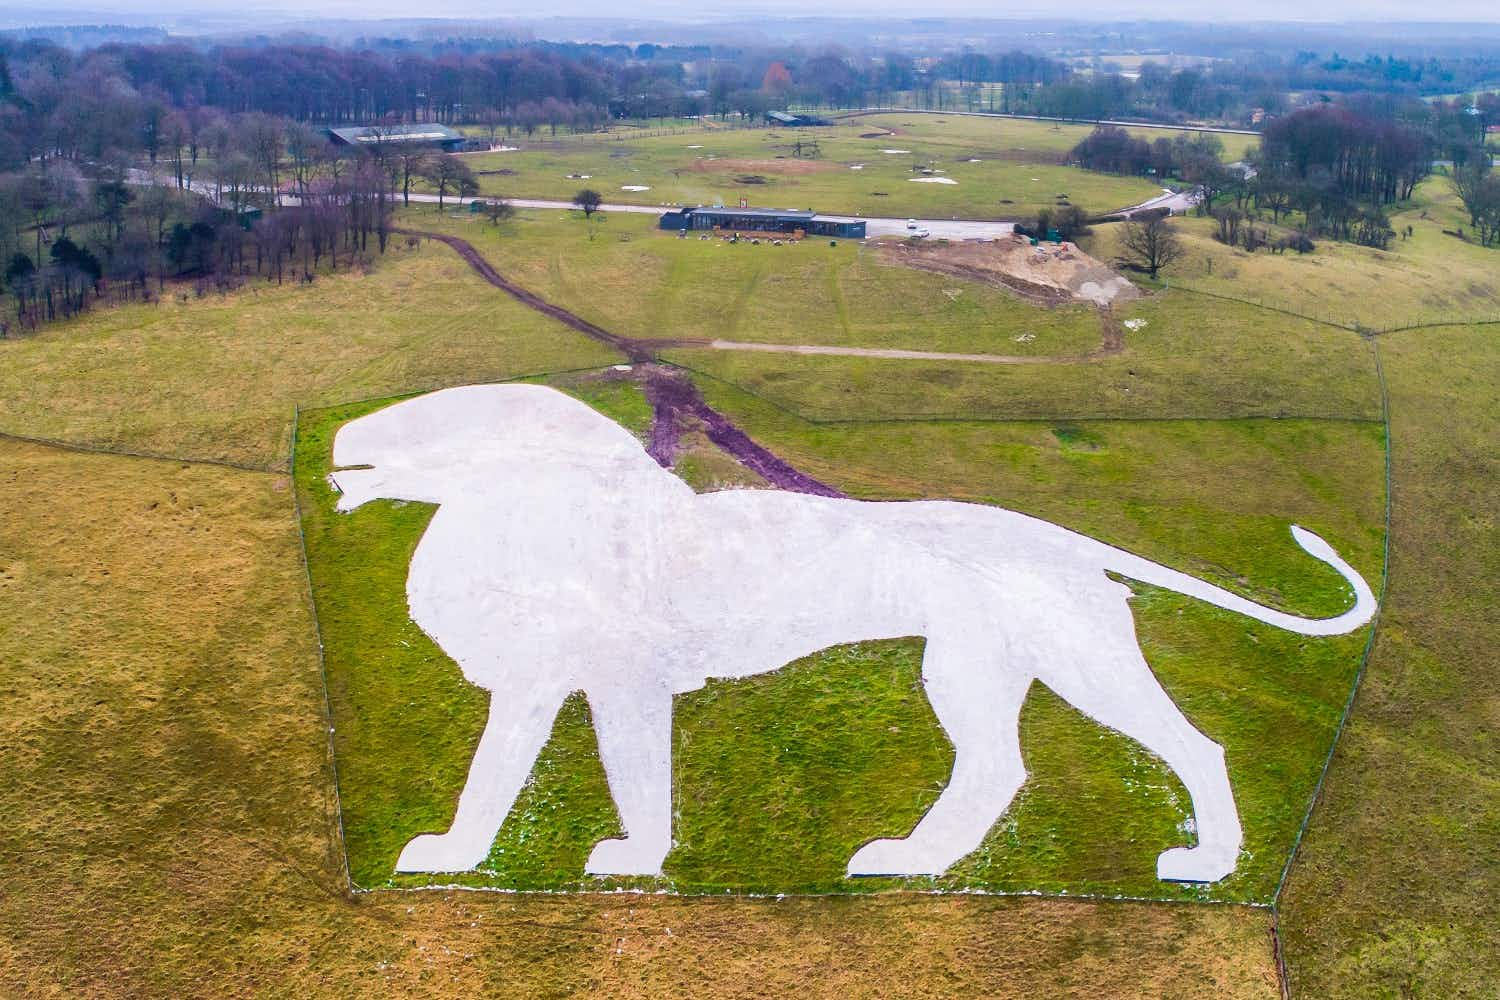 Whipsnade Zoo's famous hillside chalk lion has been restored to glory